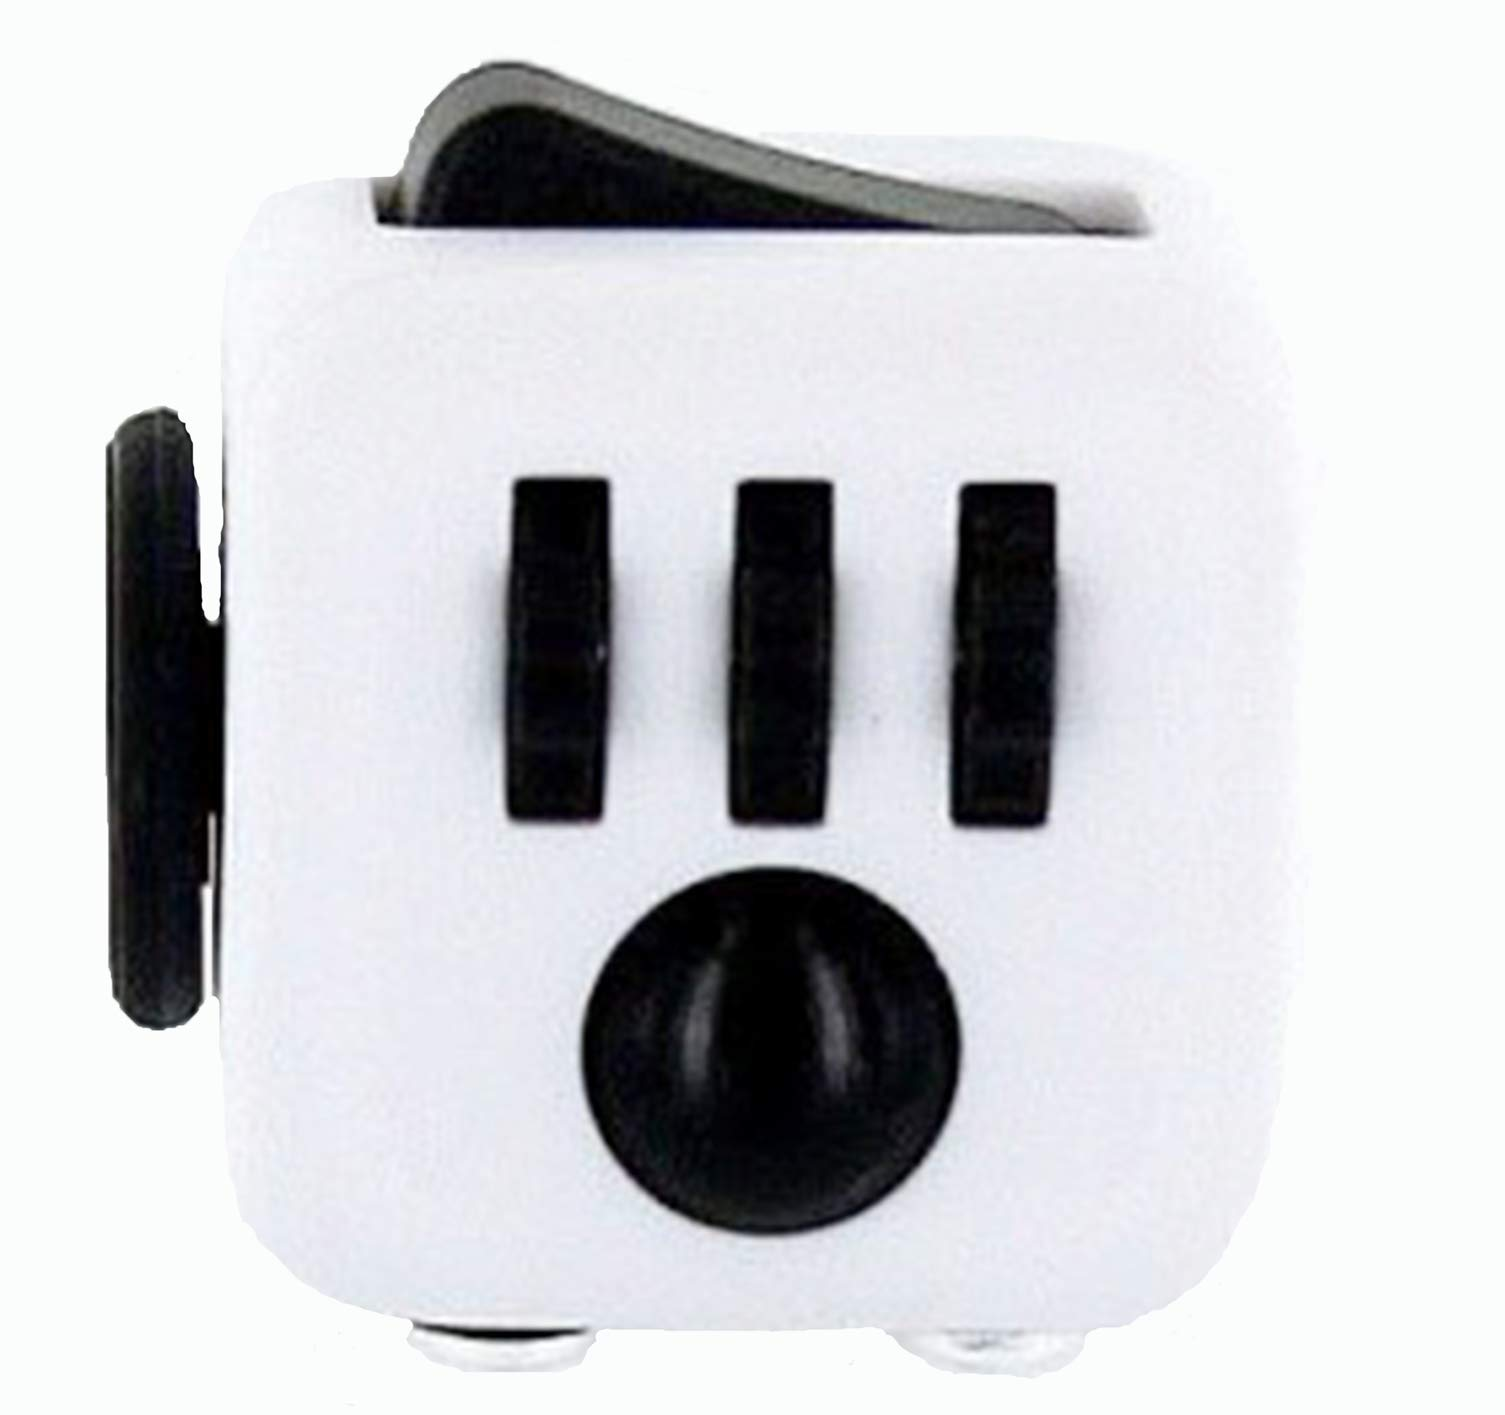 Antsy Labs Original Fidget Cube Dice (Black & White) by Antsy Labs